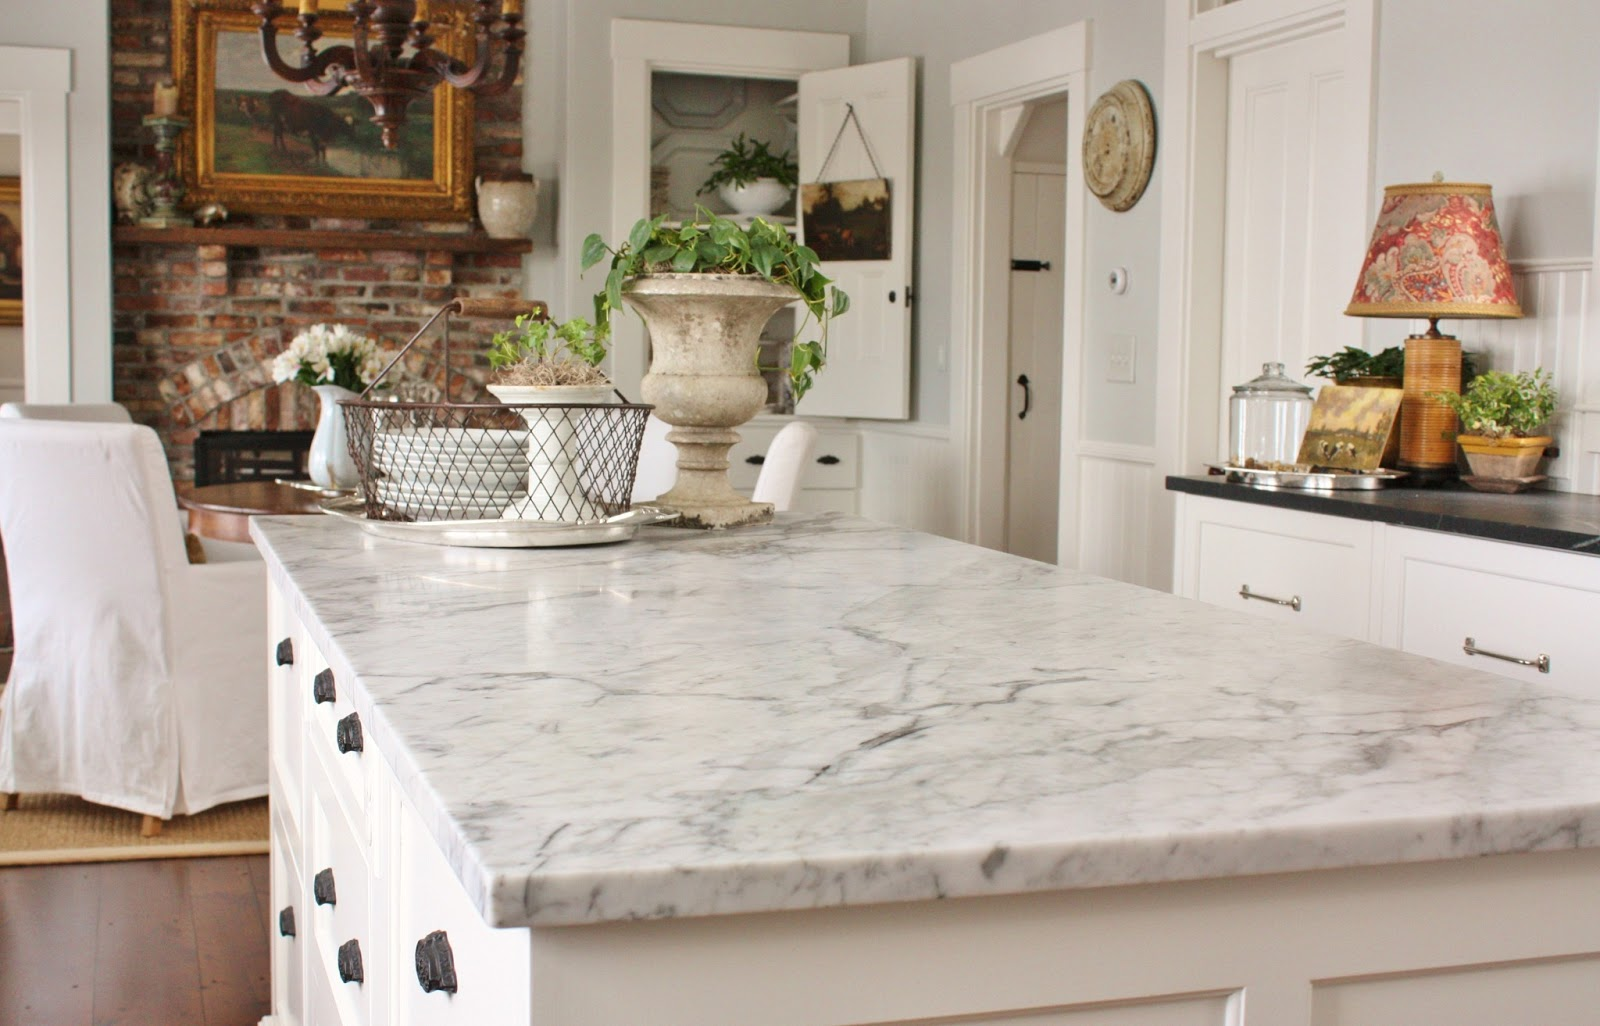 Kitchen bianco venatino marble countertops, venatino kitchen.